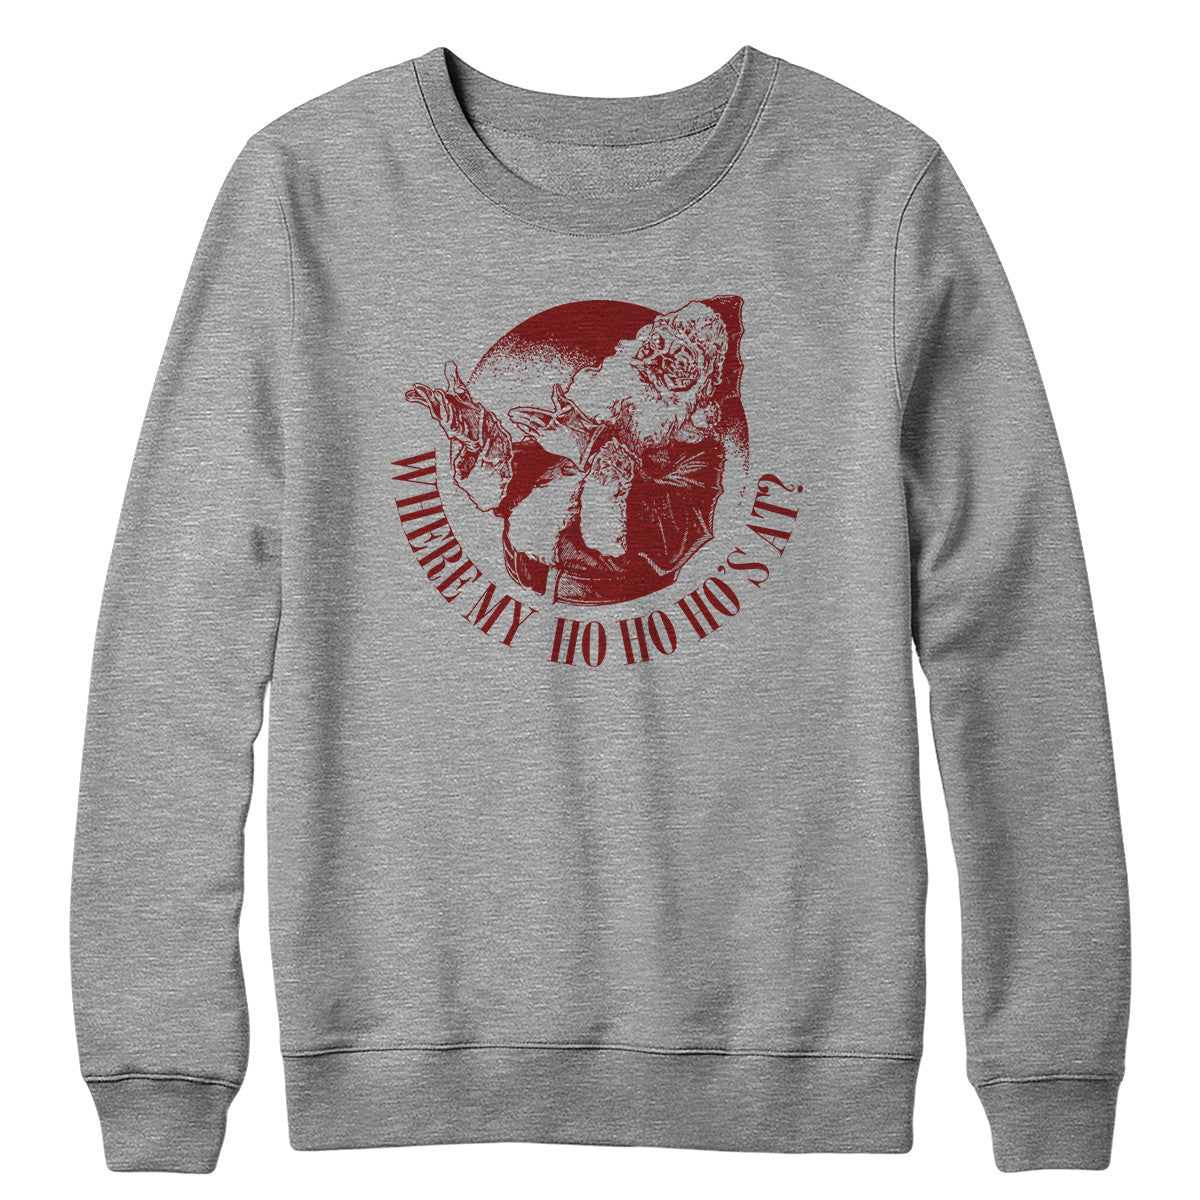 Where My Ho Ho Ho's At Crewneck Sweatshirt